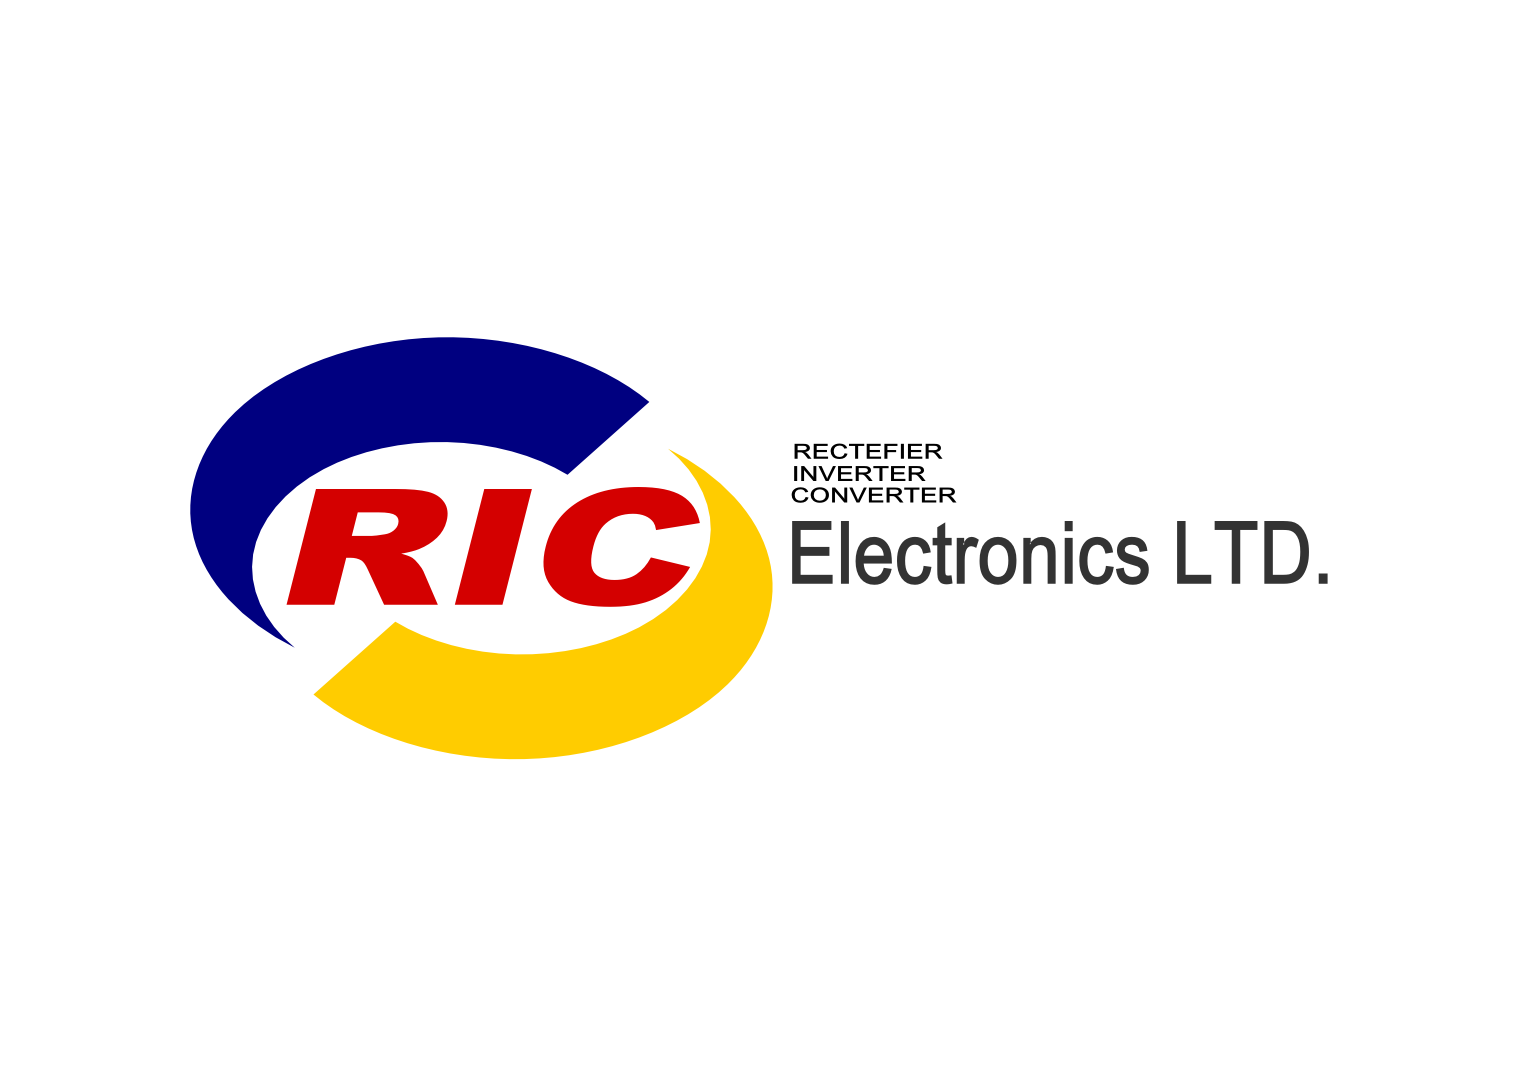 Logo Design by Joseph calunsag Cagaanan - Entry No. 77 in the Logo Design Contest New Logo Design for RIC Electronics Ltd..